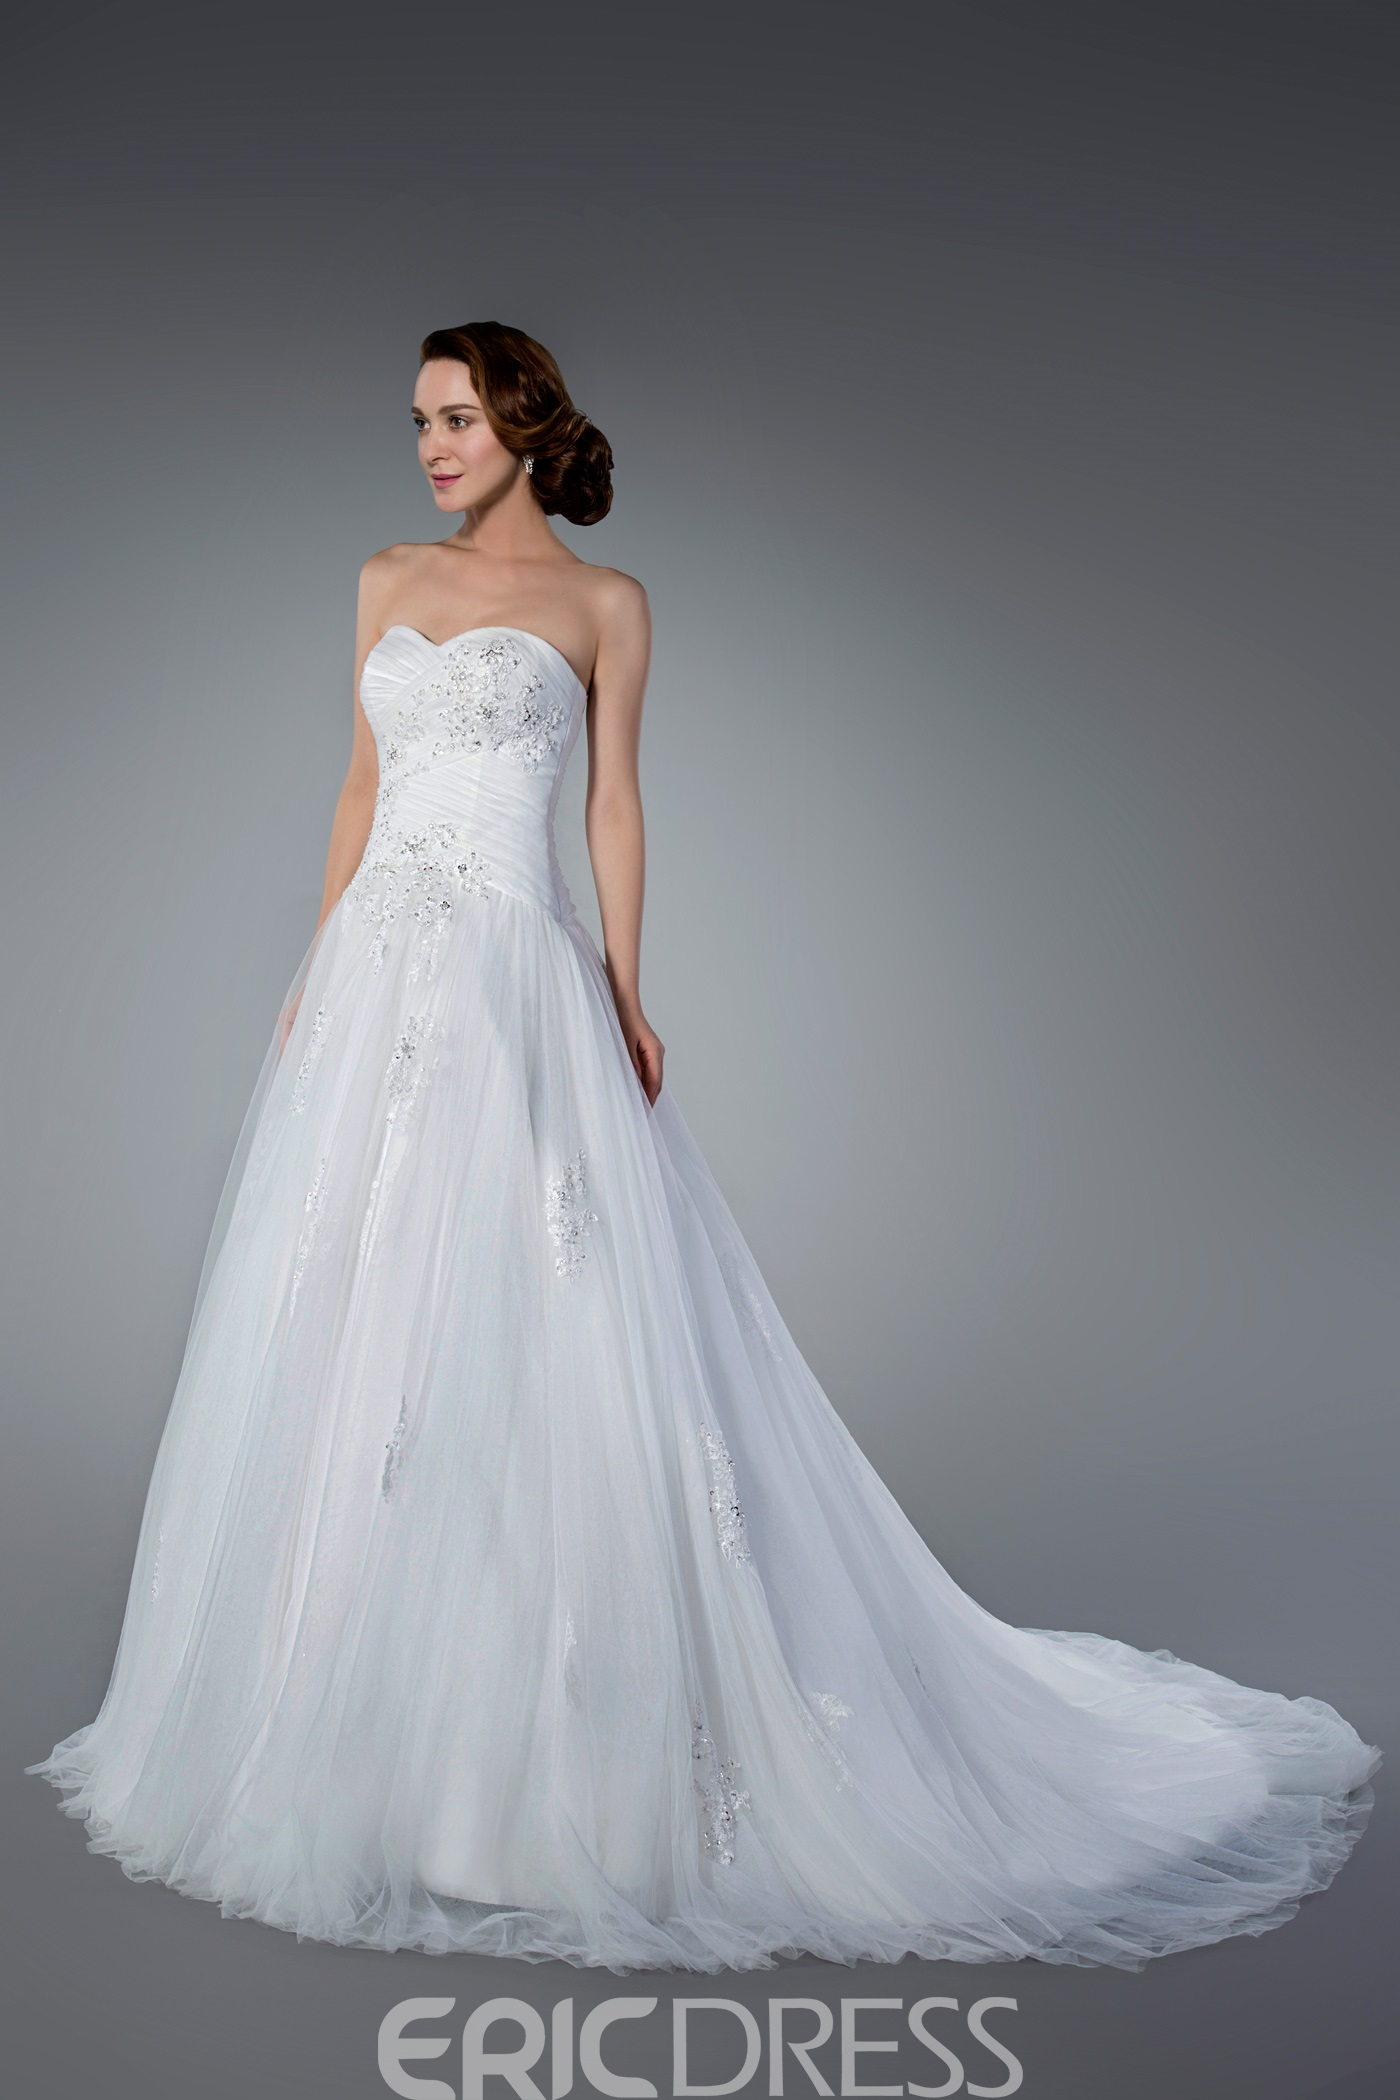 Fashionable Appliques&Sequins Tulle Strapless Sleeveless Wedding Dress 10786153